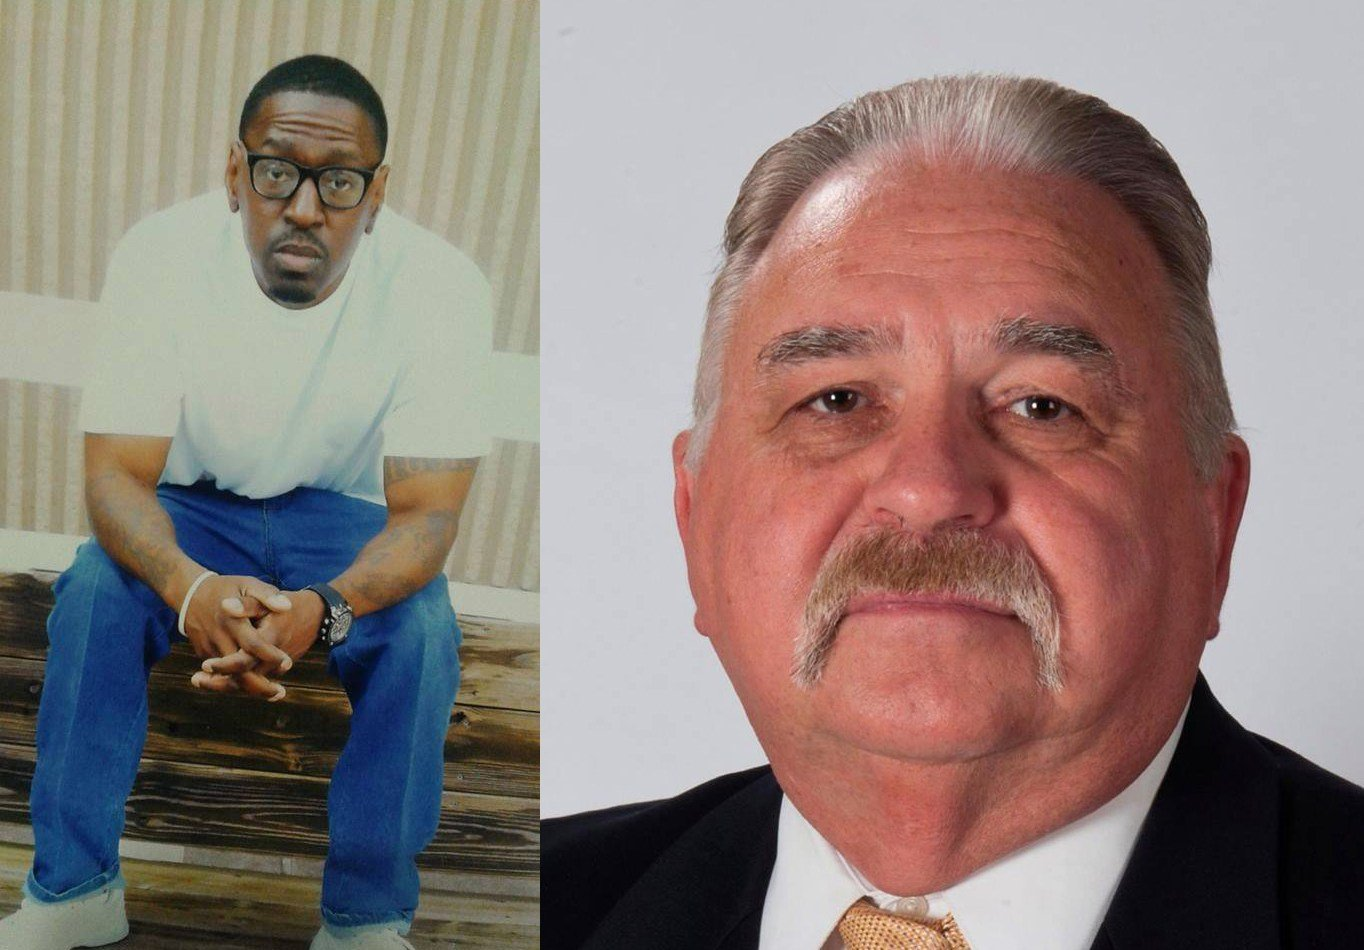 Lamonte McIntyre and Roger Golubski. (Submitted to KCTV)